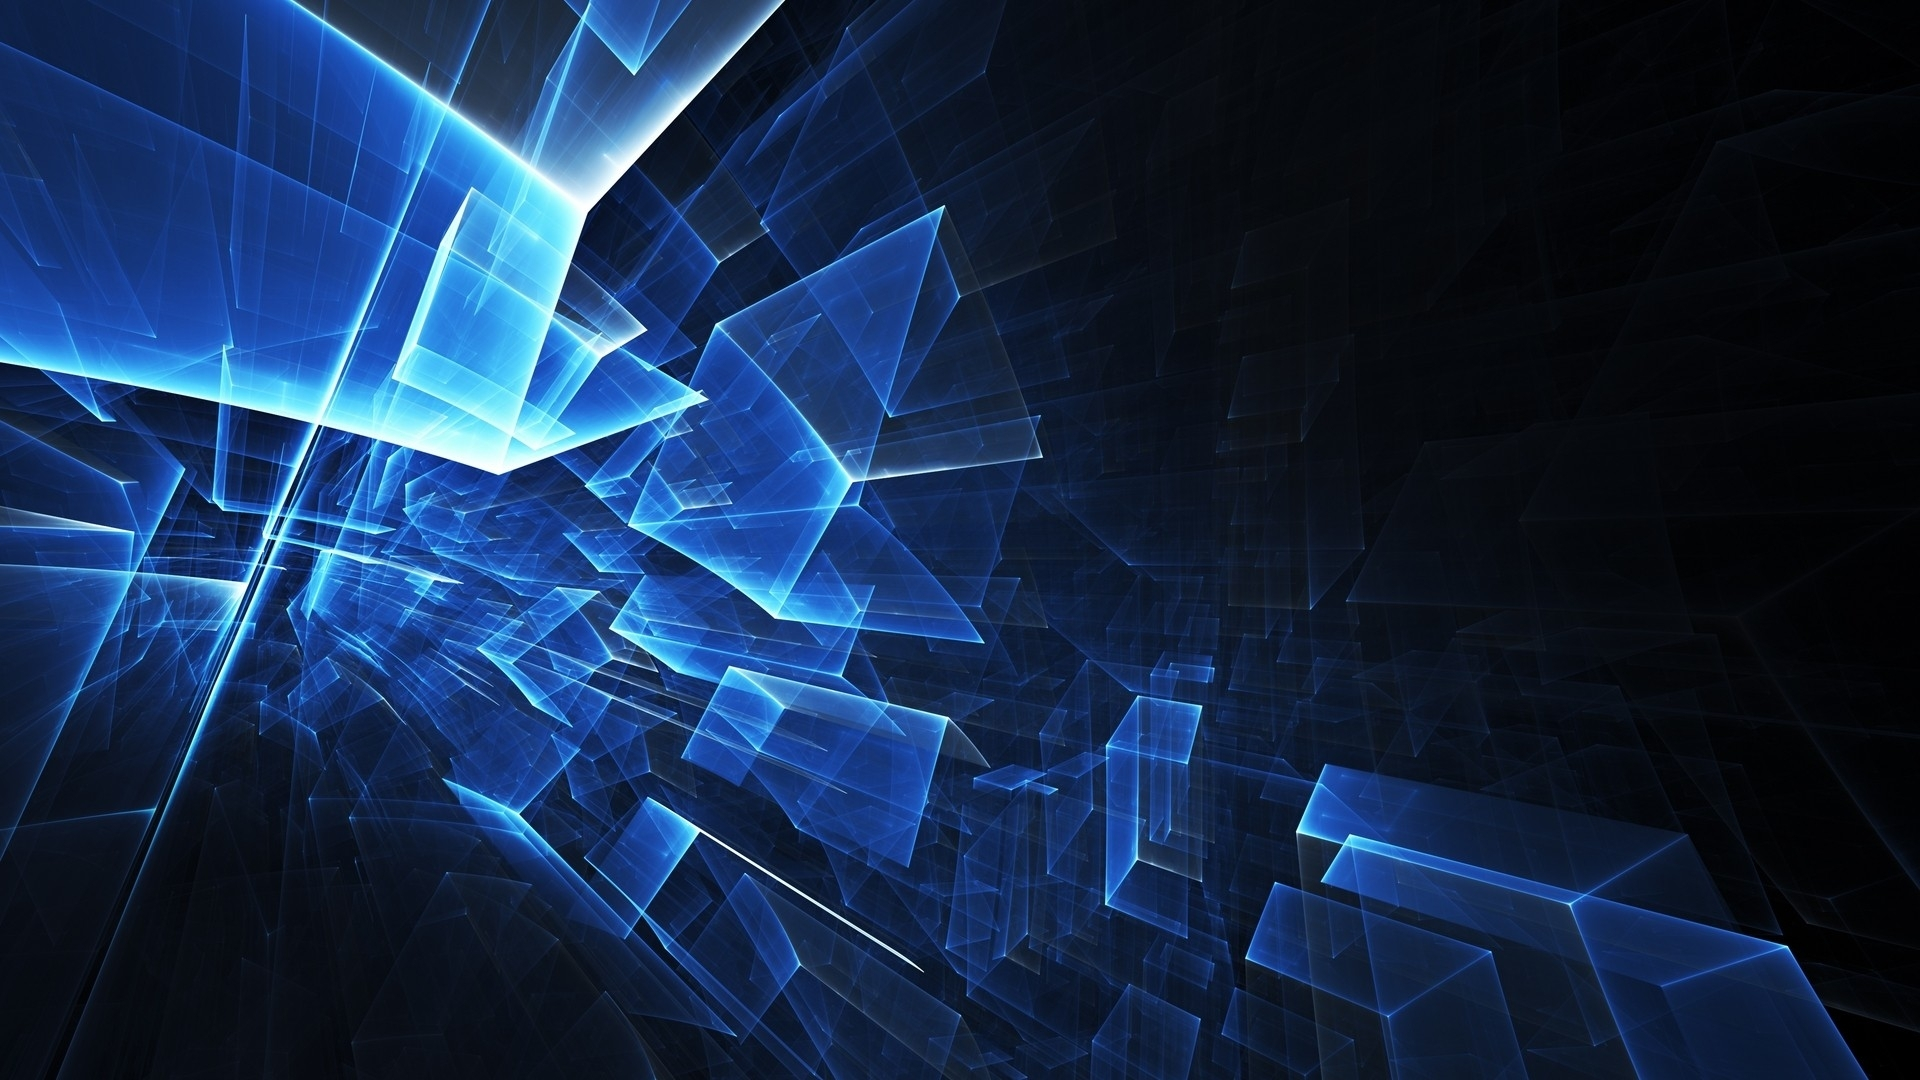 Blue Squares Abstract